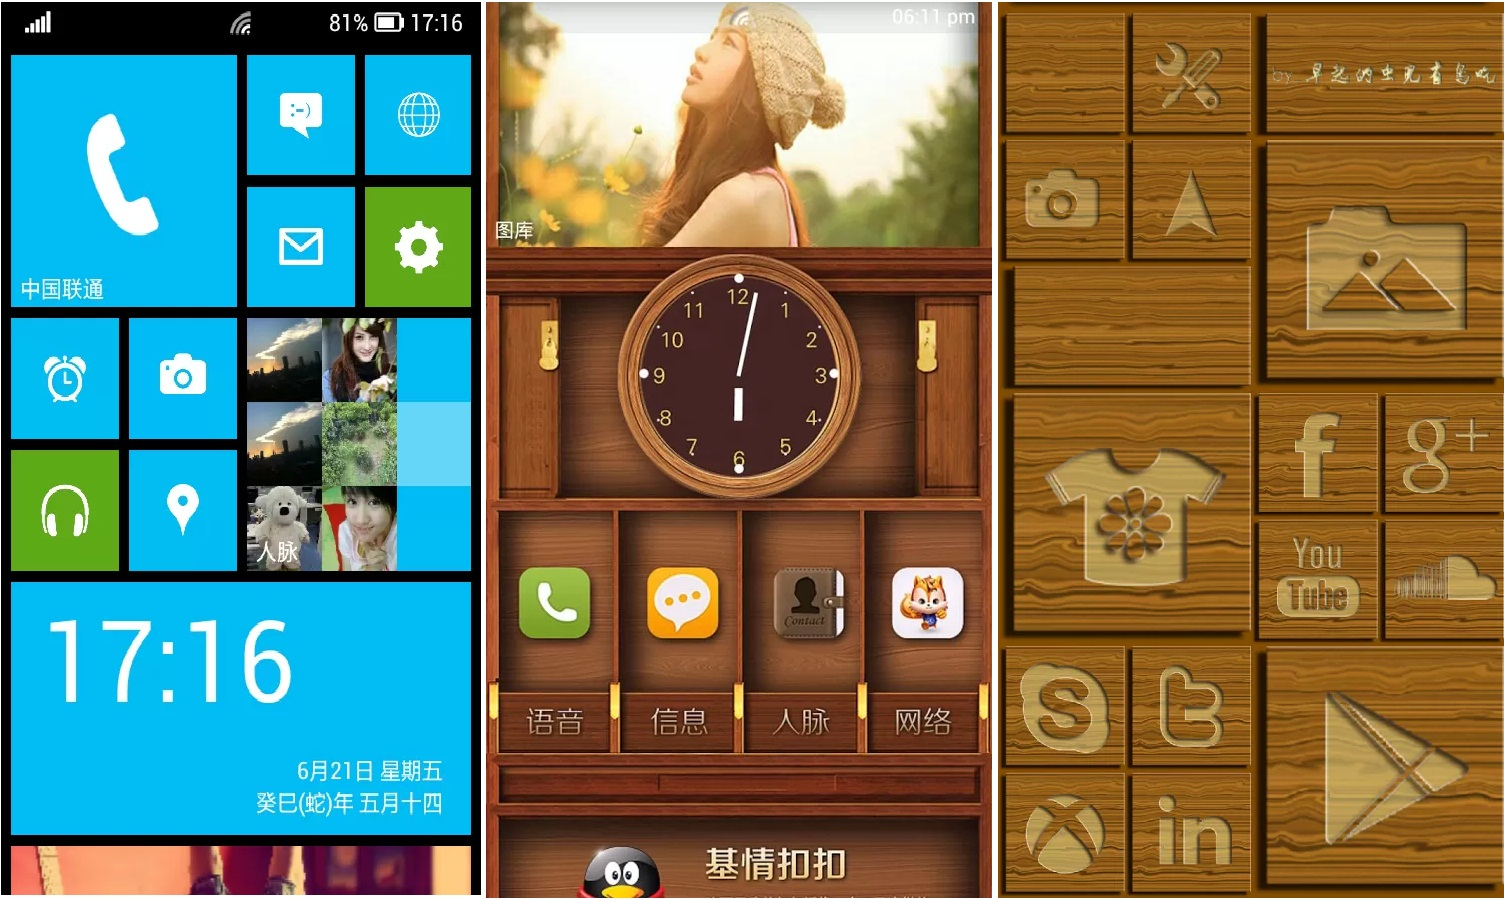 Launchers for Android, Android Launcher App, techbuzzes,  Launcher 8, Launcher 8 for Android,